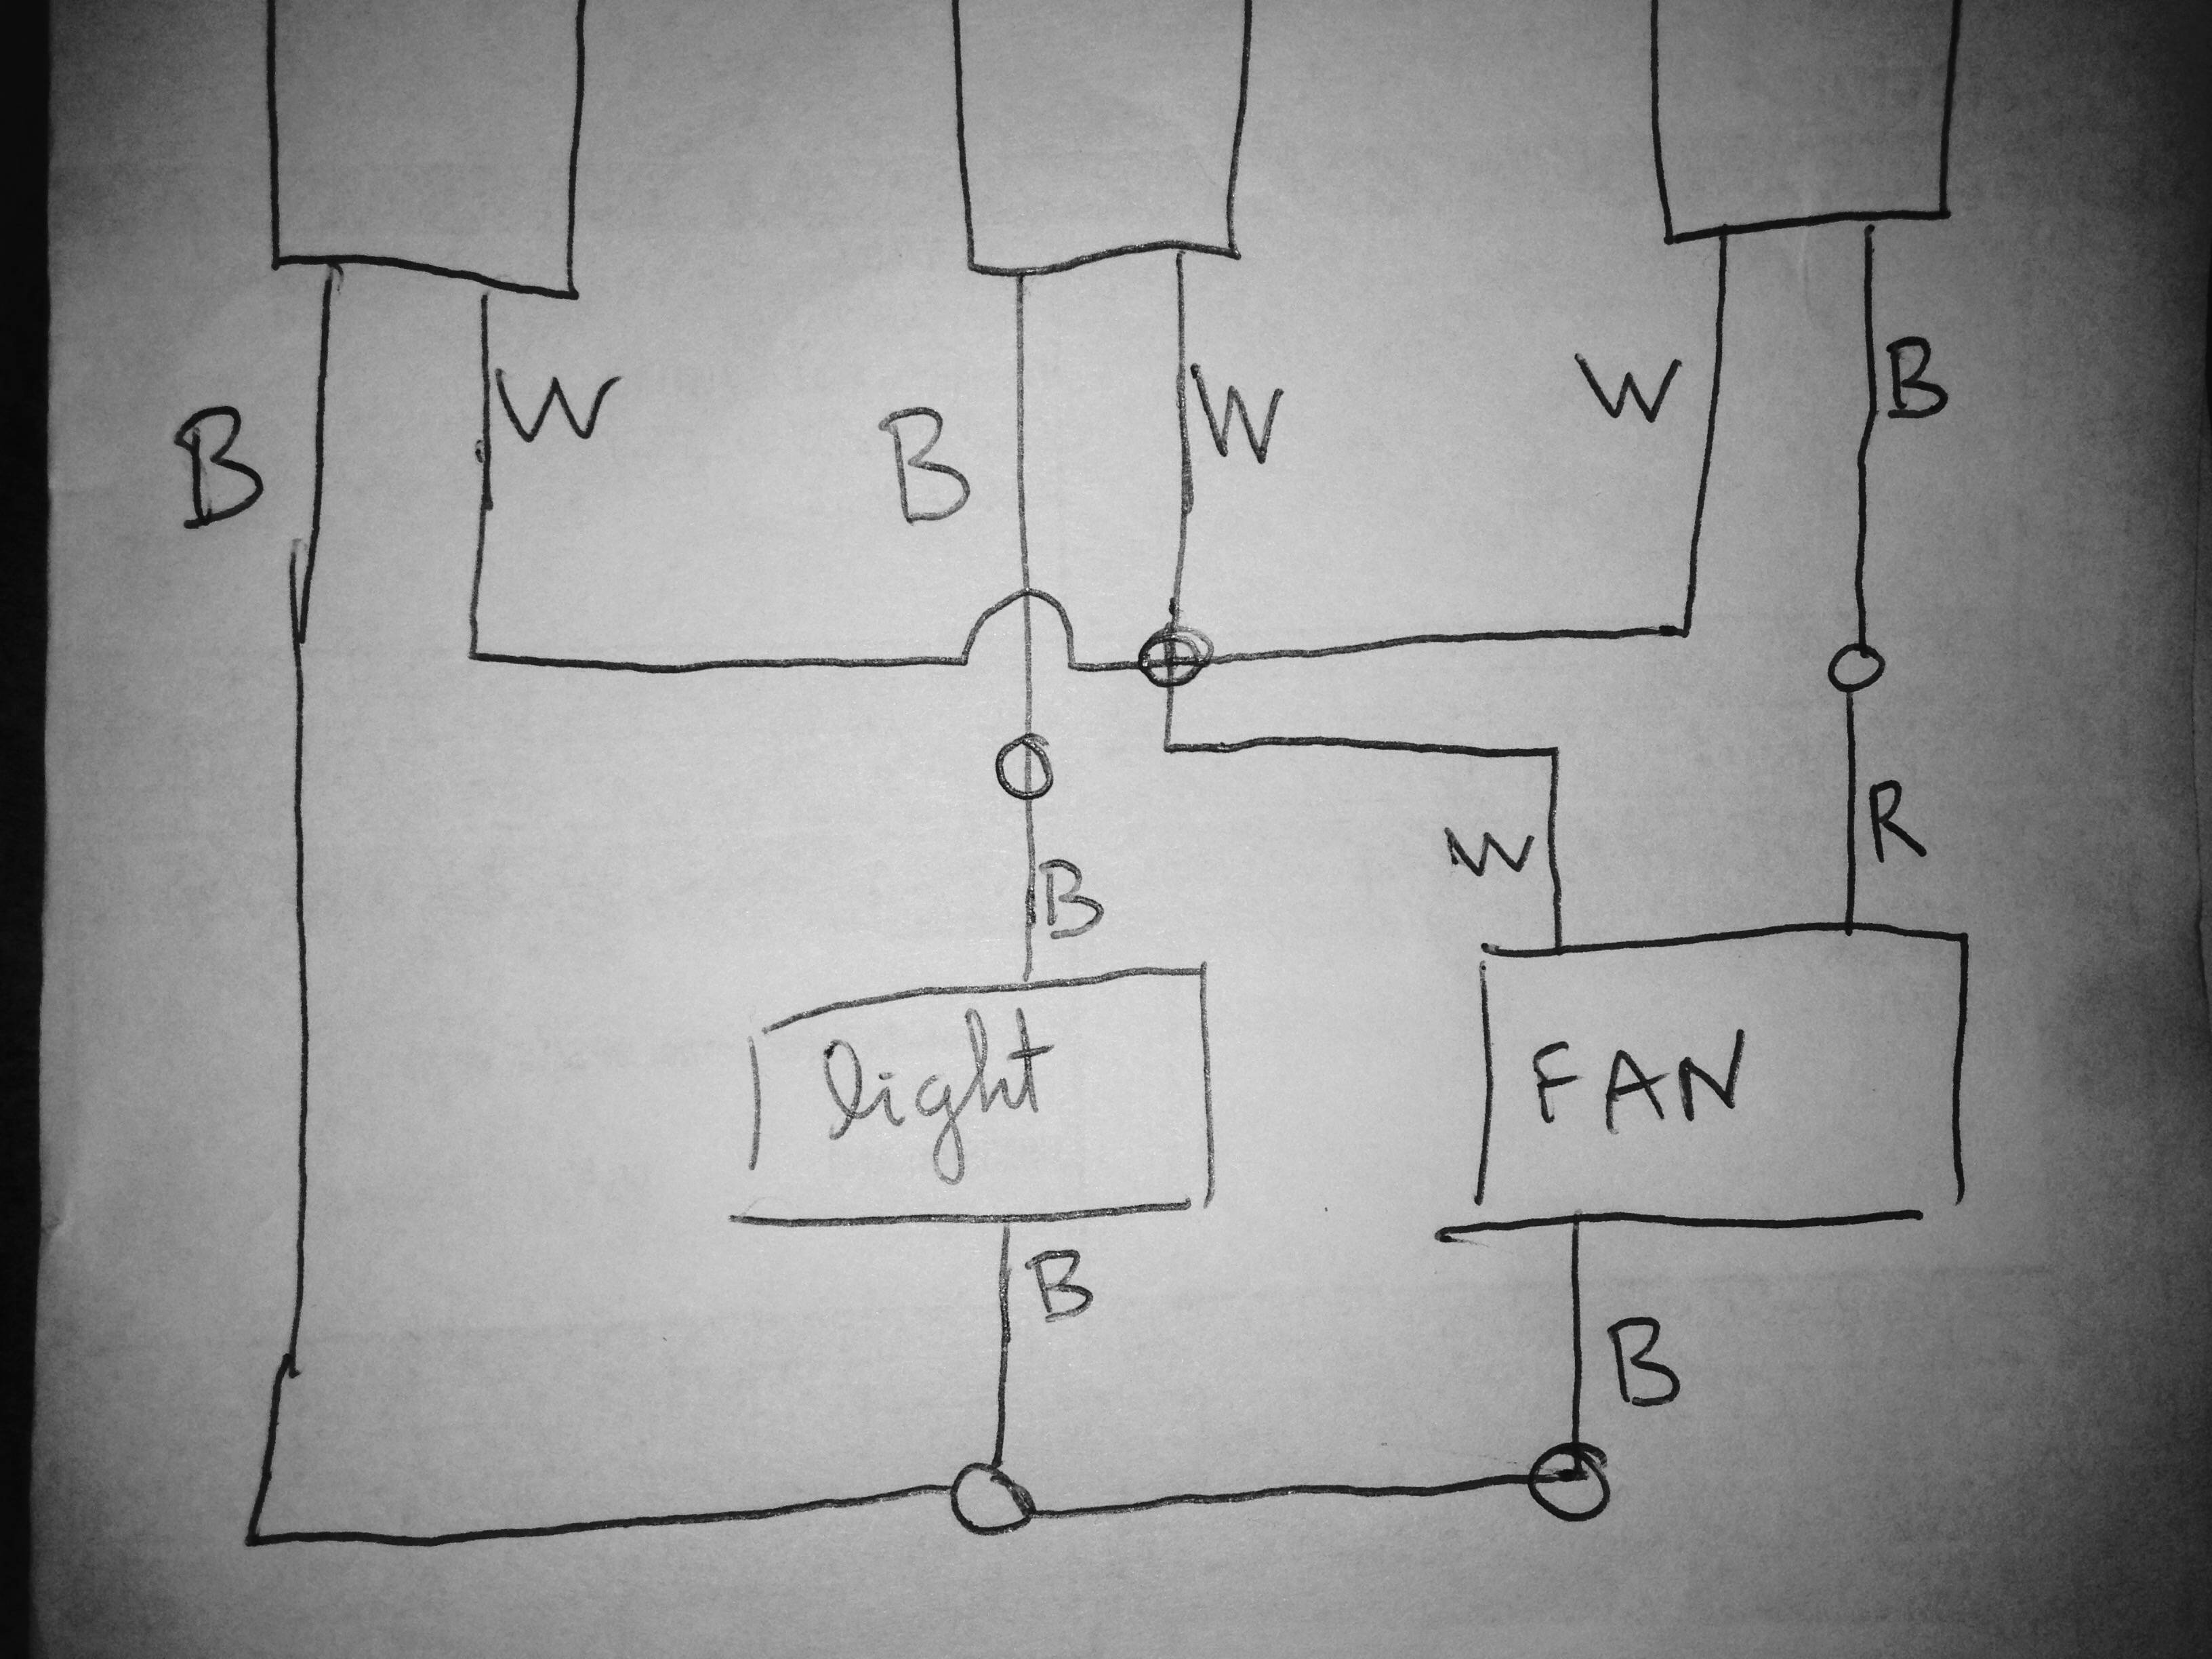 10 switch box wiring diagram ceiling fan installation help me understand complicated junction